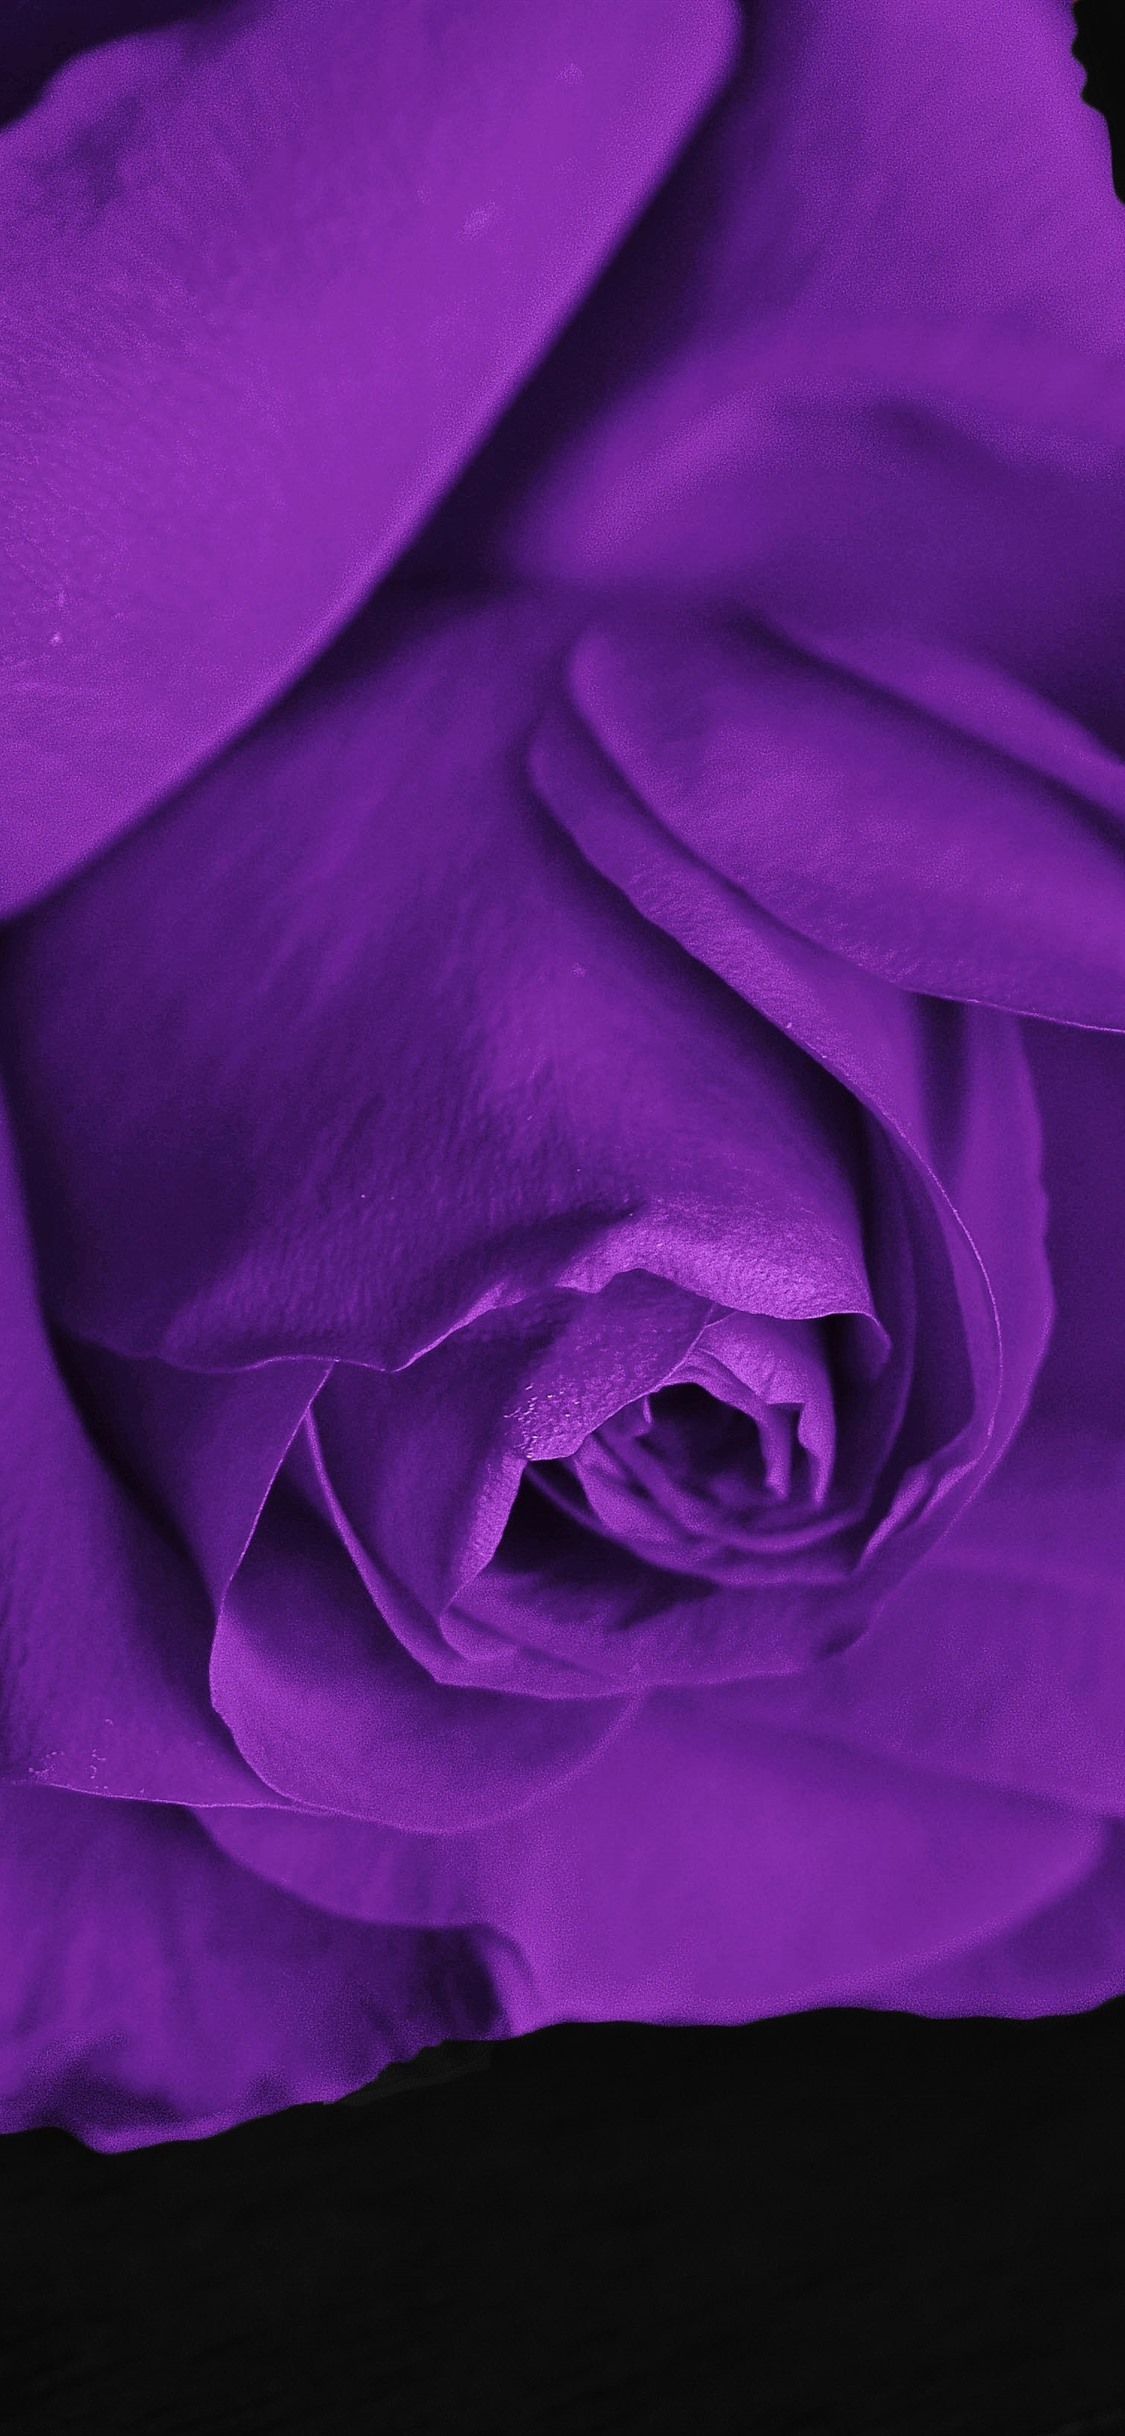 Purple Rose Black Background 1242x2688 Iphone 11 Pro Xs Max Wallpaper Background Picture Image